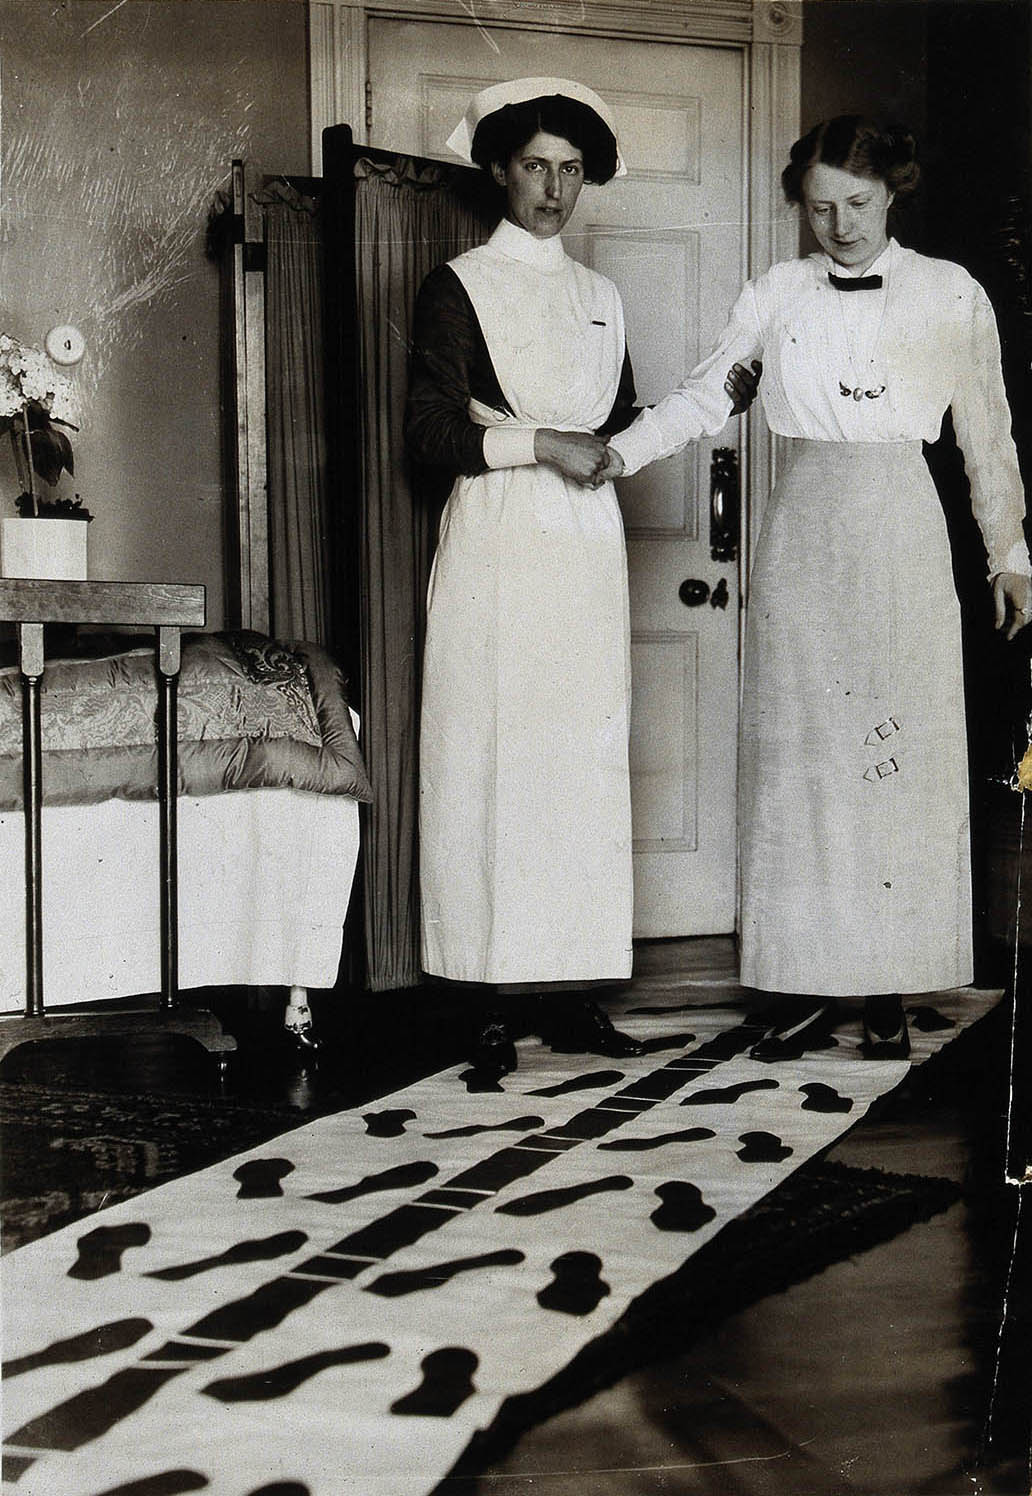 A nurse steadies a patient during physical therapy, undated.